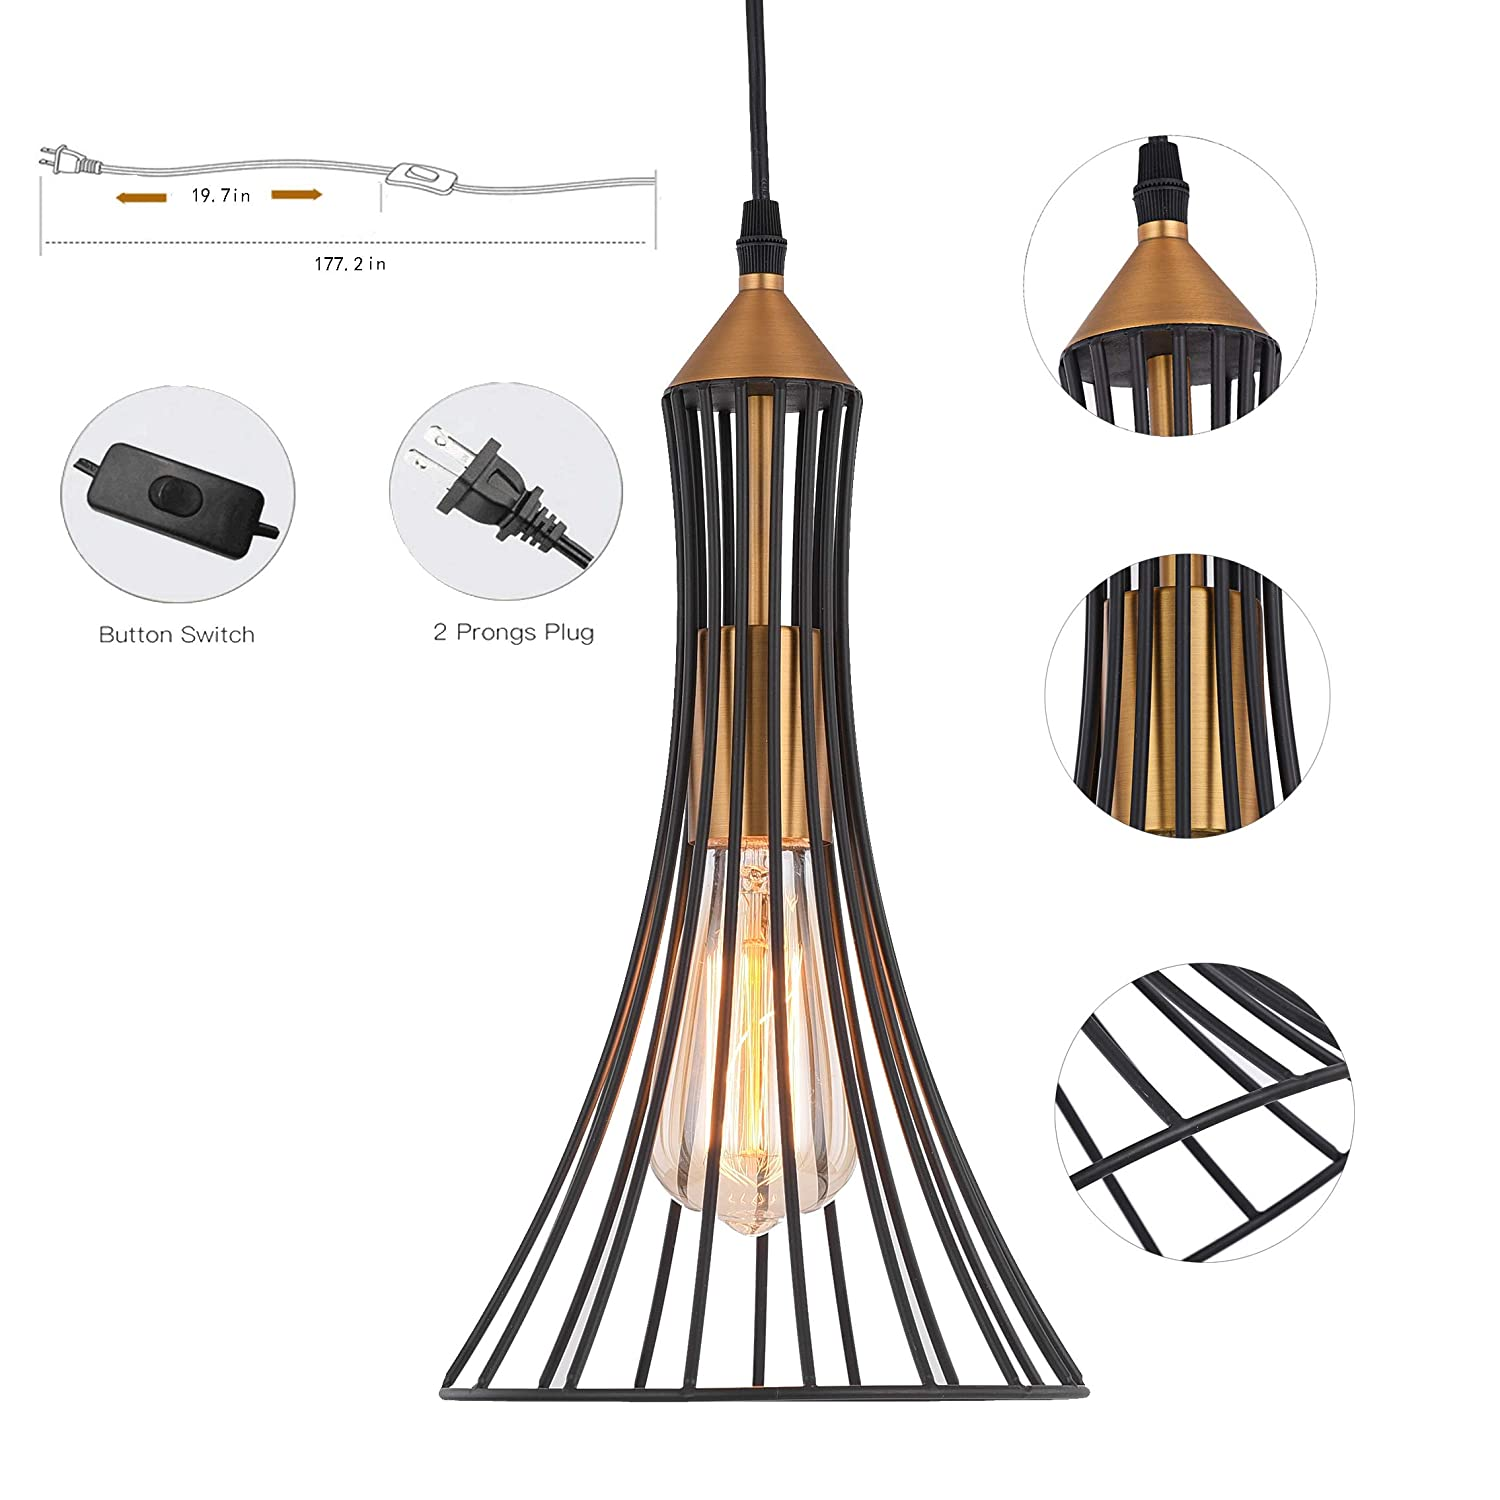 Ceiling Light With15 Ft Plug In Cord Light Fixture With On Off Switch Set Of 2 Us Pl1901 Plug In Pendant Light Hoxiya Metal Hanging Lamp Shade Ceiling Light With15 Ft Plug In Cord